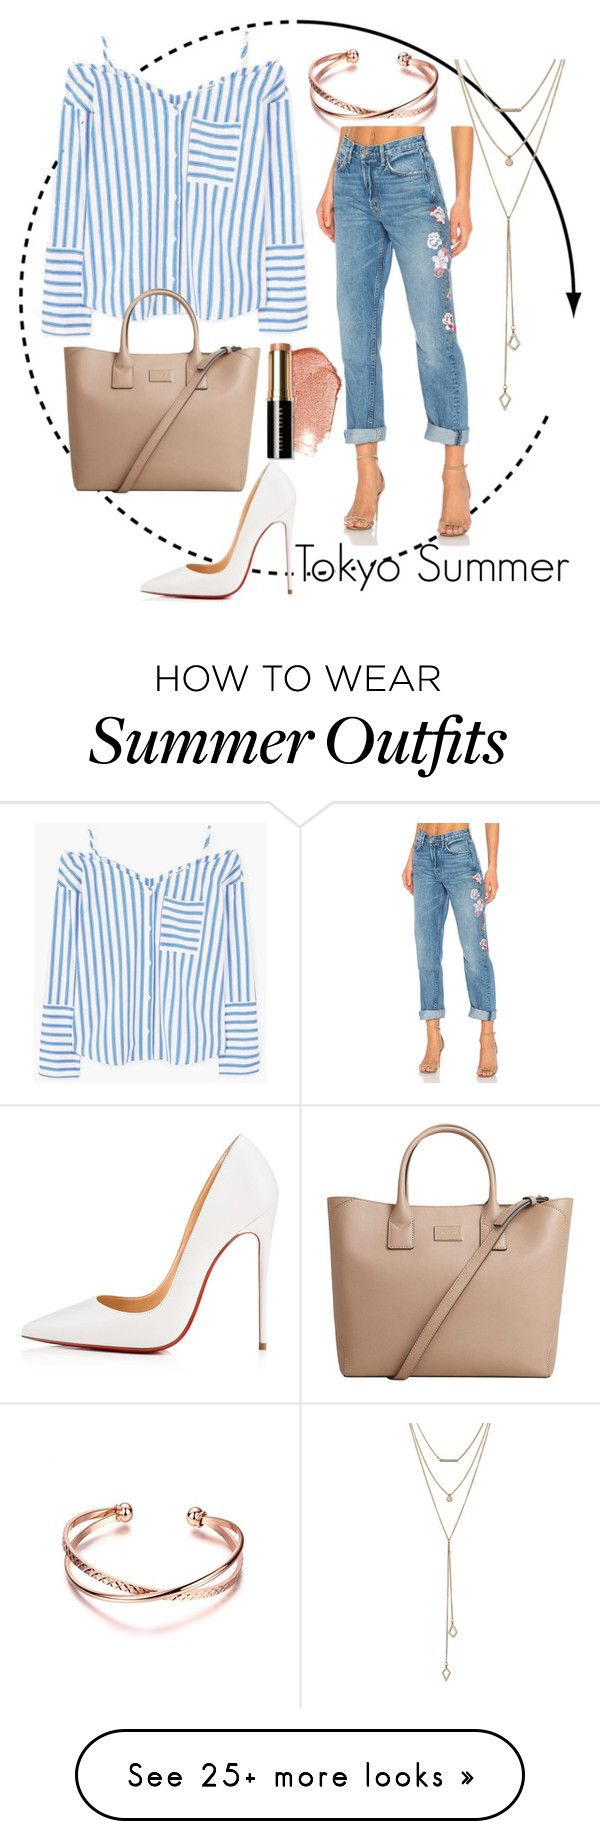 """""""Travel Series: Tokyo Summer outfit"""" by outfitsdisney on Polyvore featuring Bobbi Brown Cosmetics, GRLFRND, MANGO, Christian Louboutin and SUGARFIX by BaubleBar"""